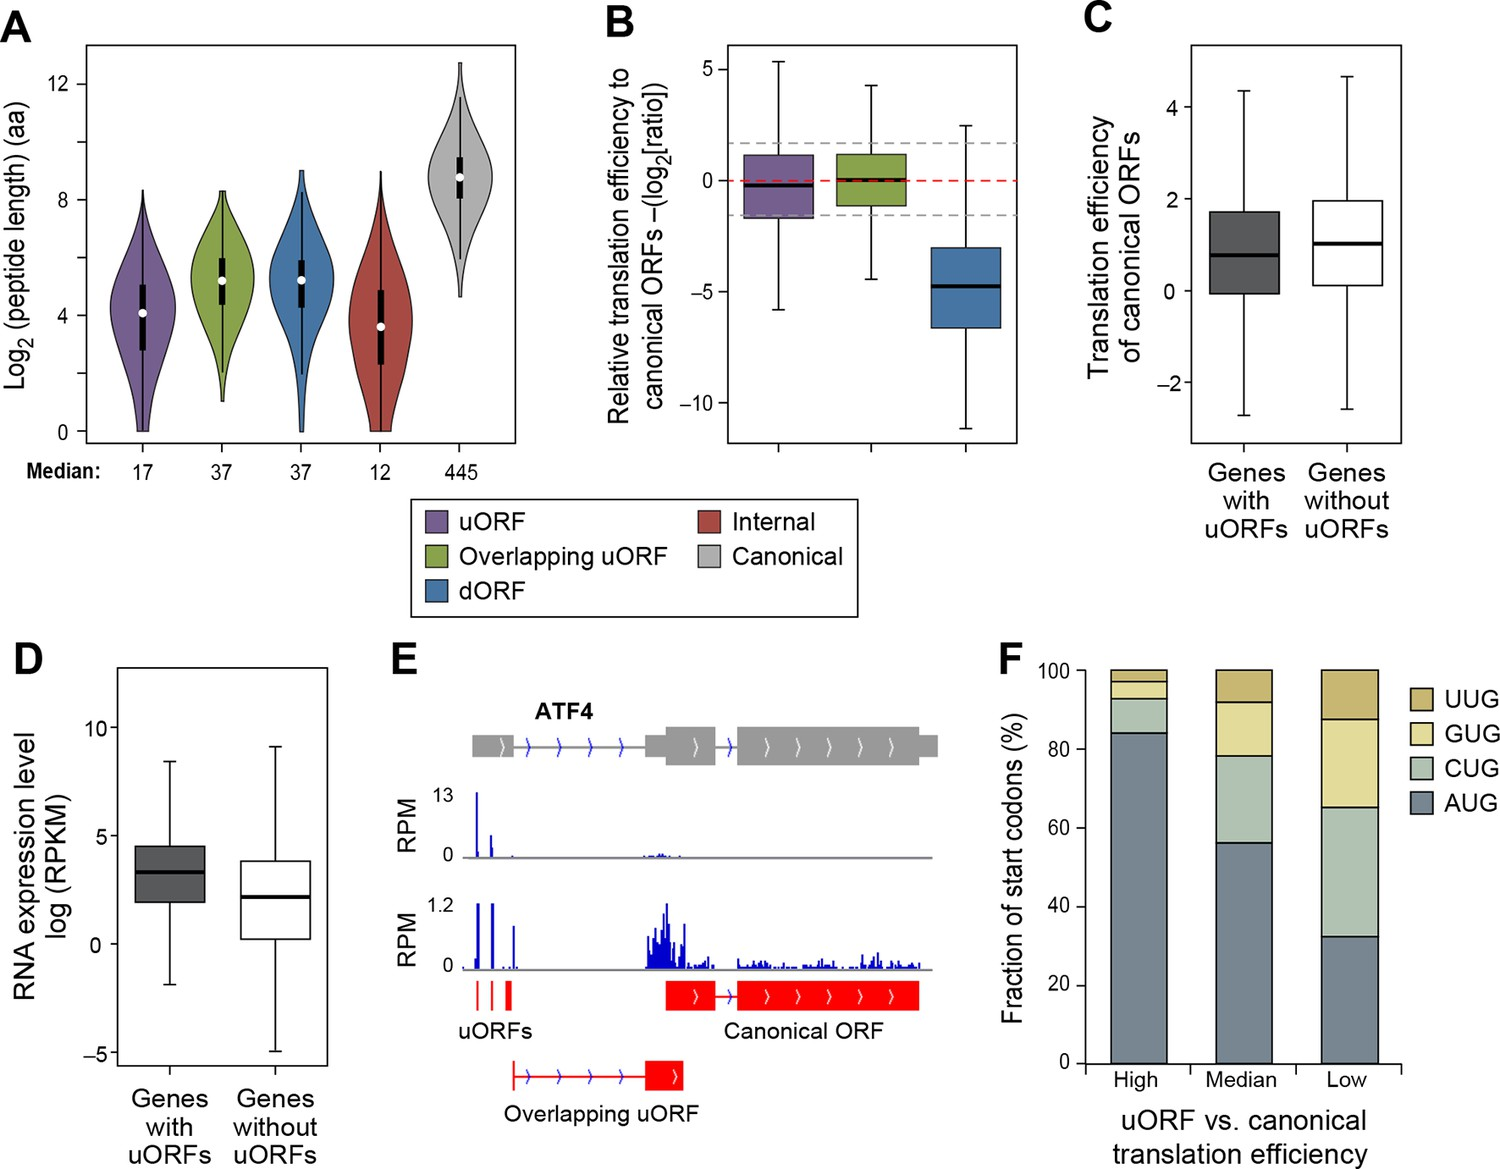 Many lncRNAs, 5'UTRs, and pseudogenes are translated and